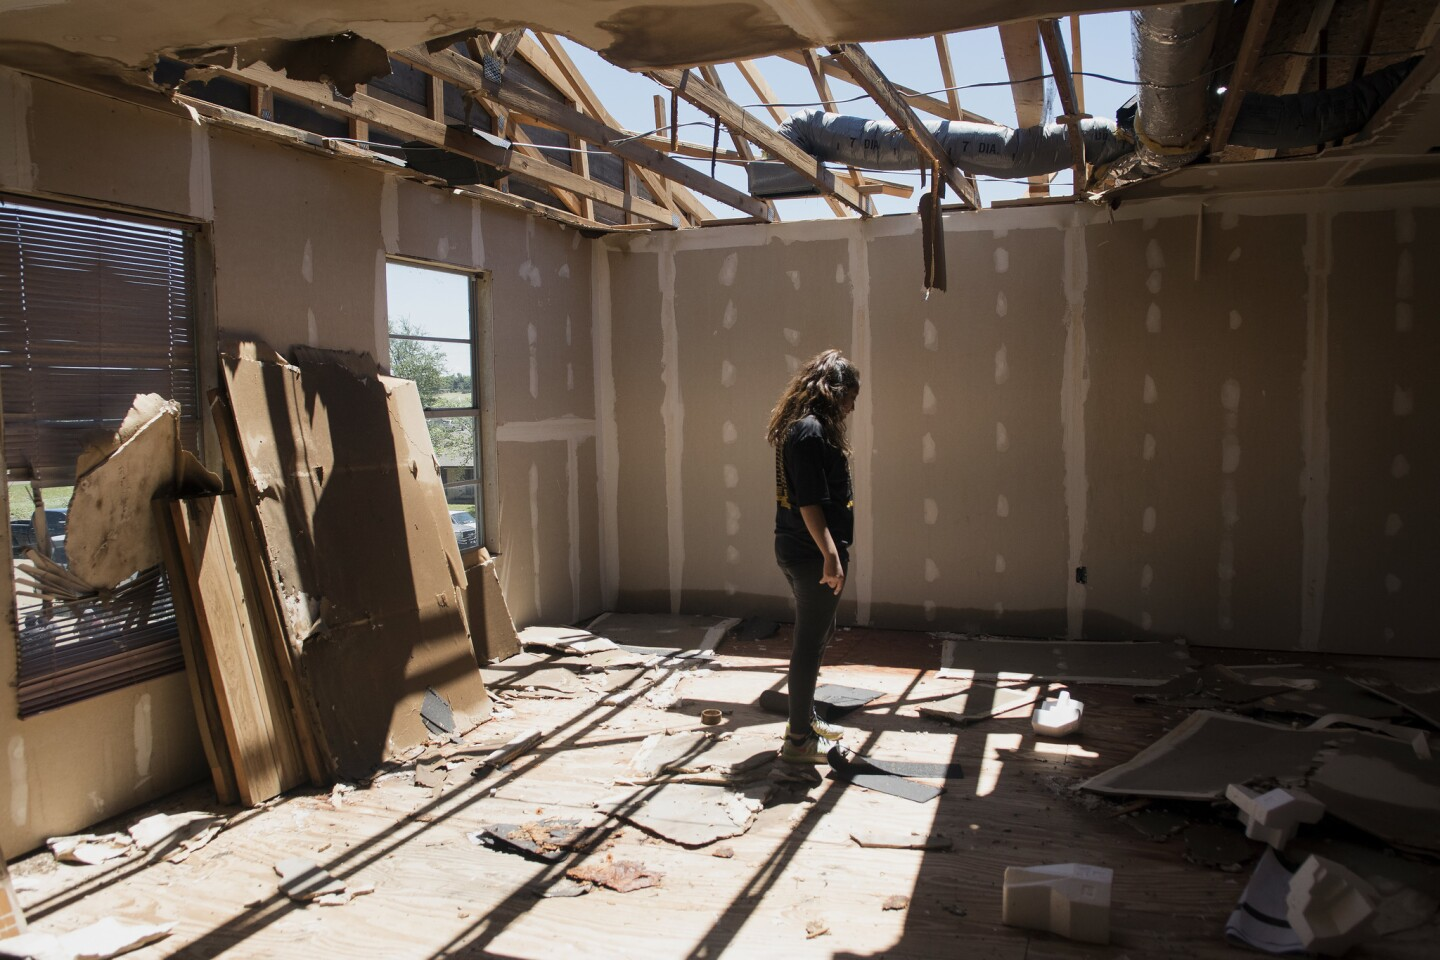 Stephanie Quezada looks at the damage to the second floor of her father's church, Primera Iglesia Bautista, in Canton, Texas, on April 30, 2017. Severe storms including tornadoes swept through several small towns in East Texas, killing several and leaving a trail of overturned vehicles, mangled trees and damaged homes, authorities said Sunday.